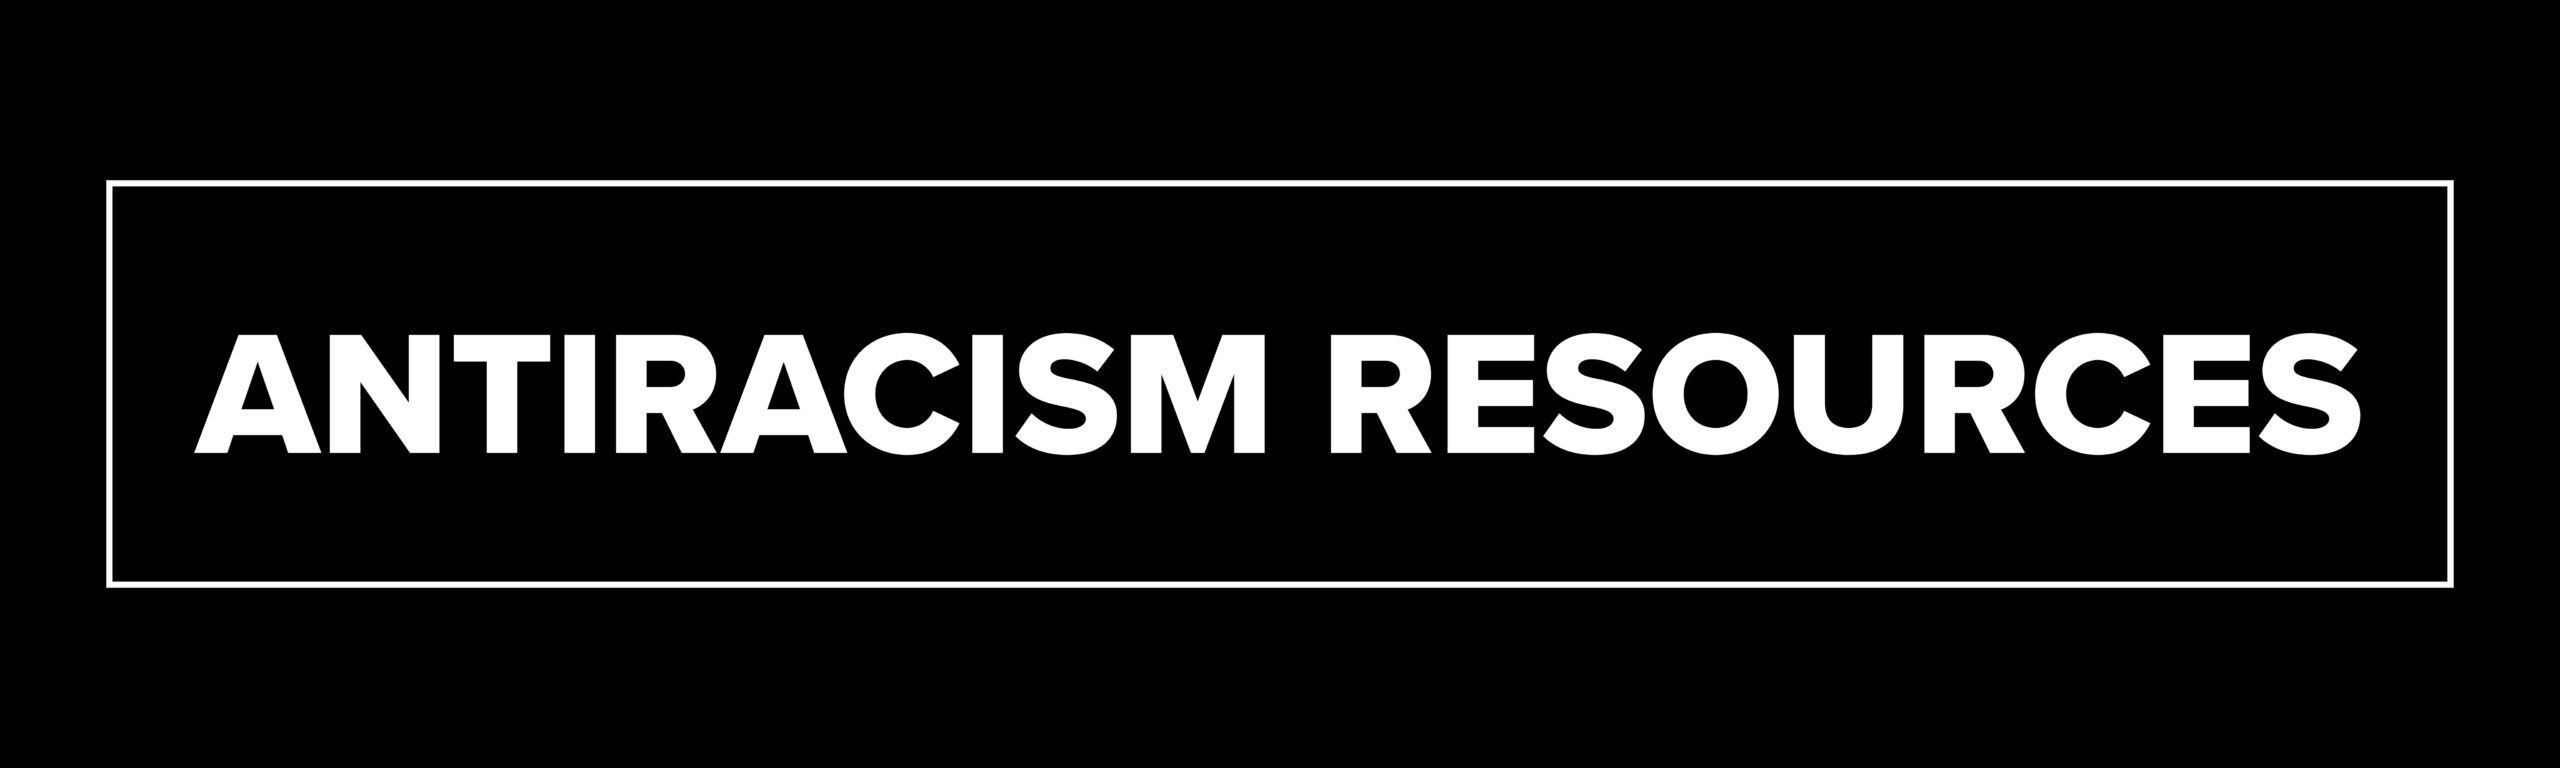 RLC Antiracism Resources